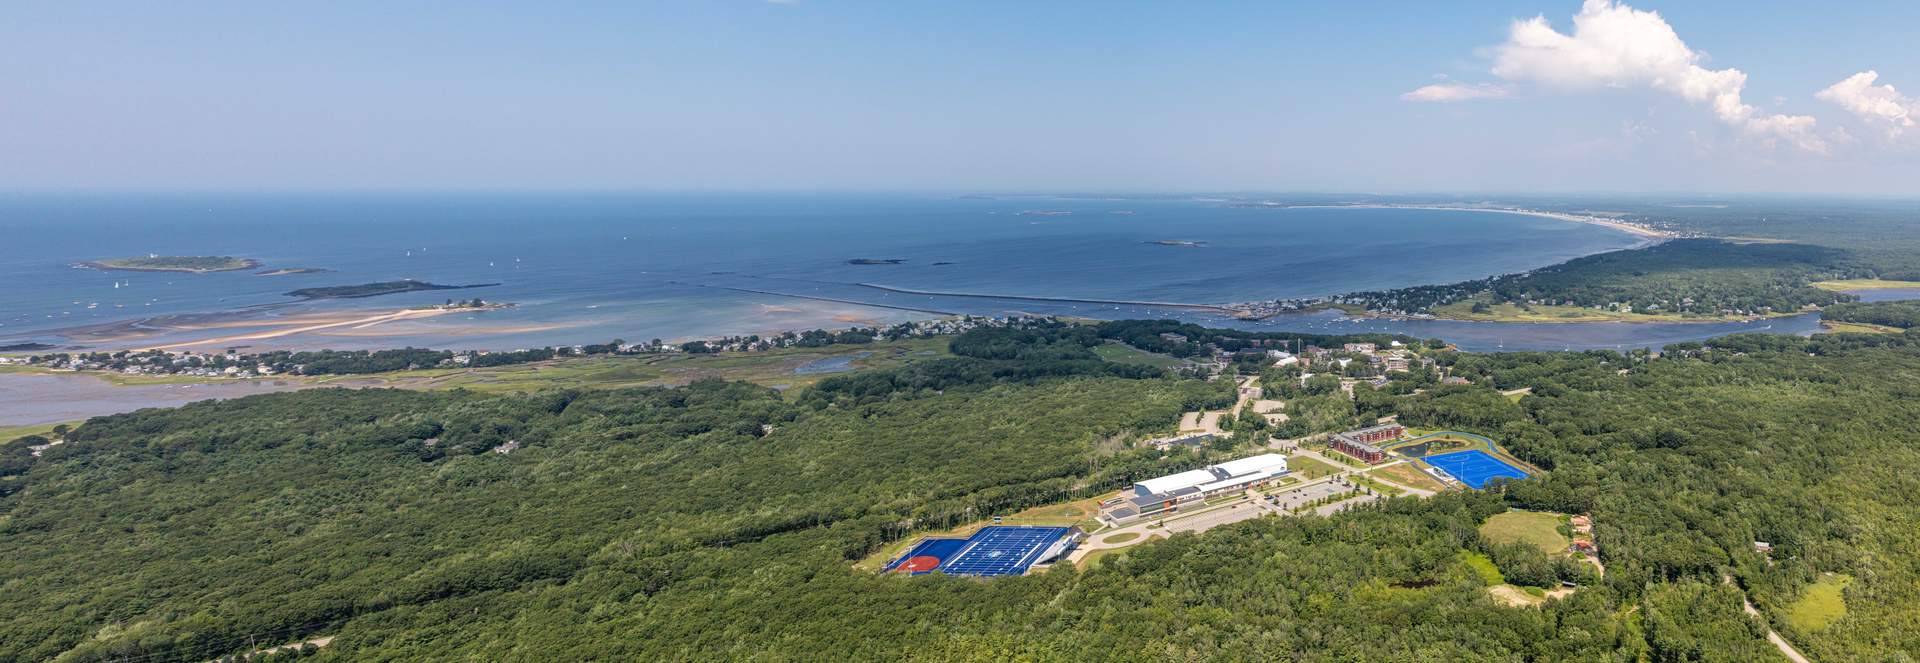 Arial view of the Biddeford campus